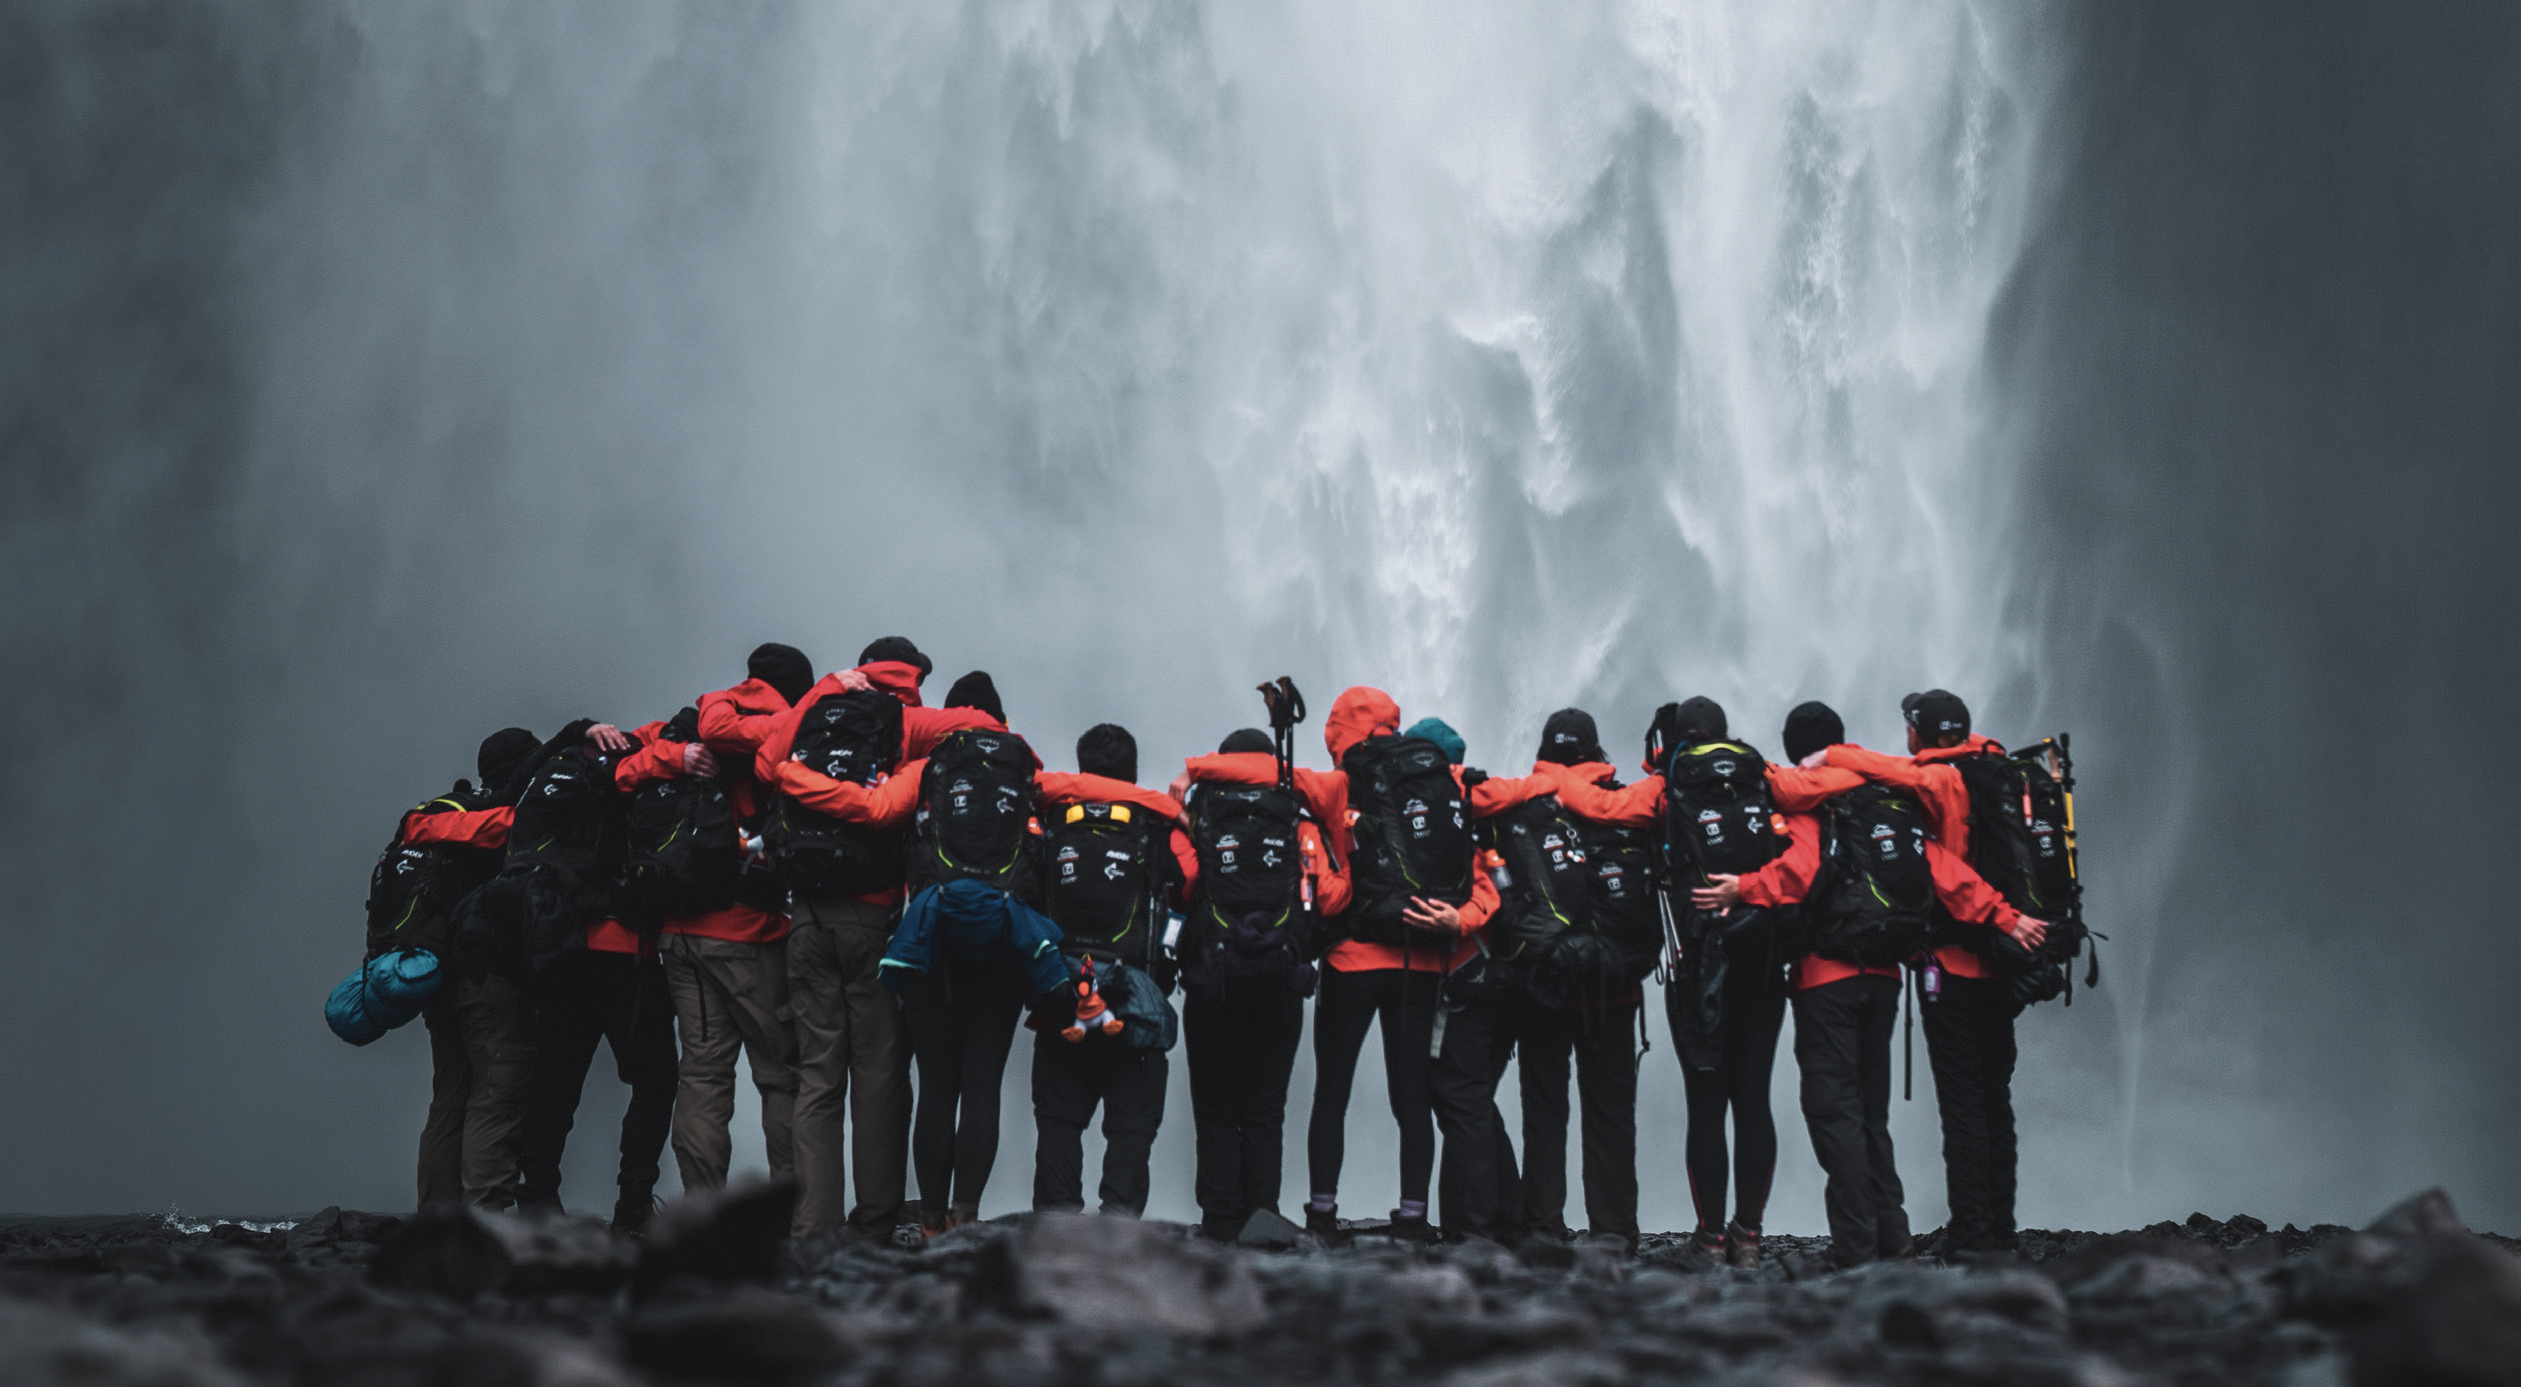 The team trekked to